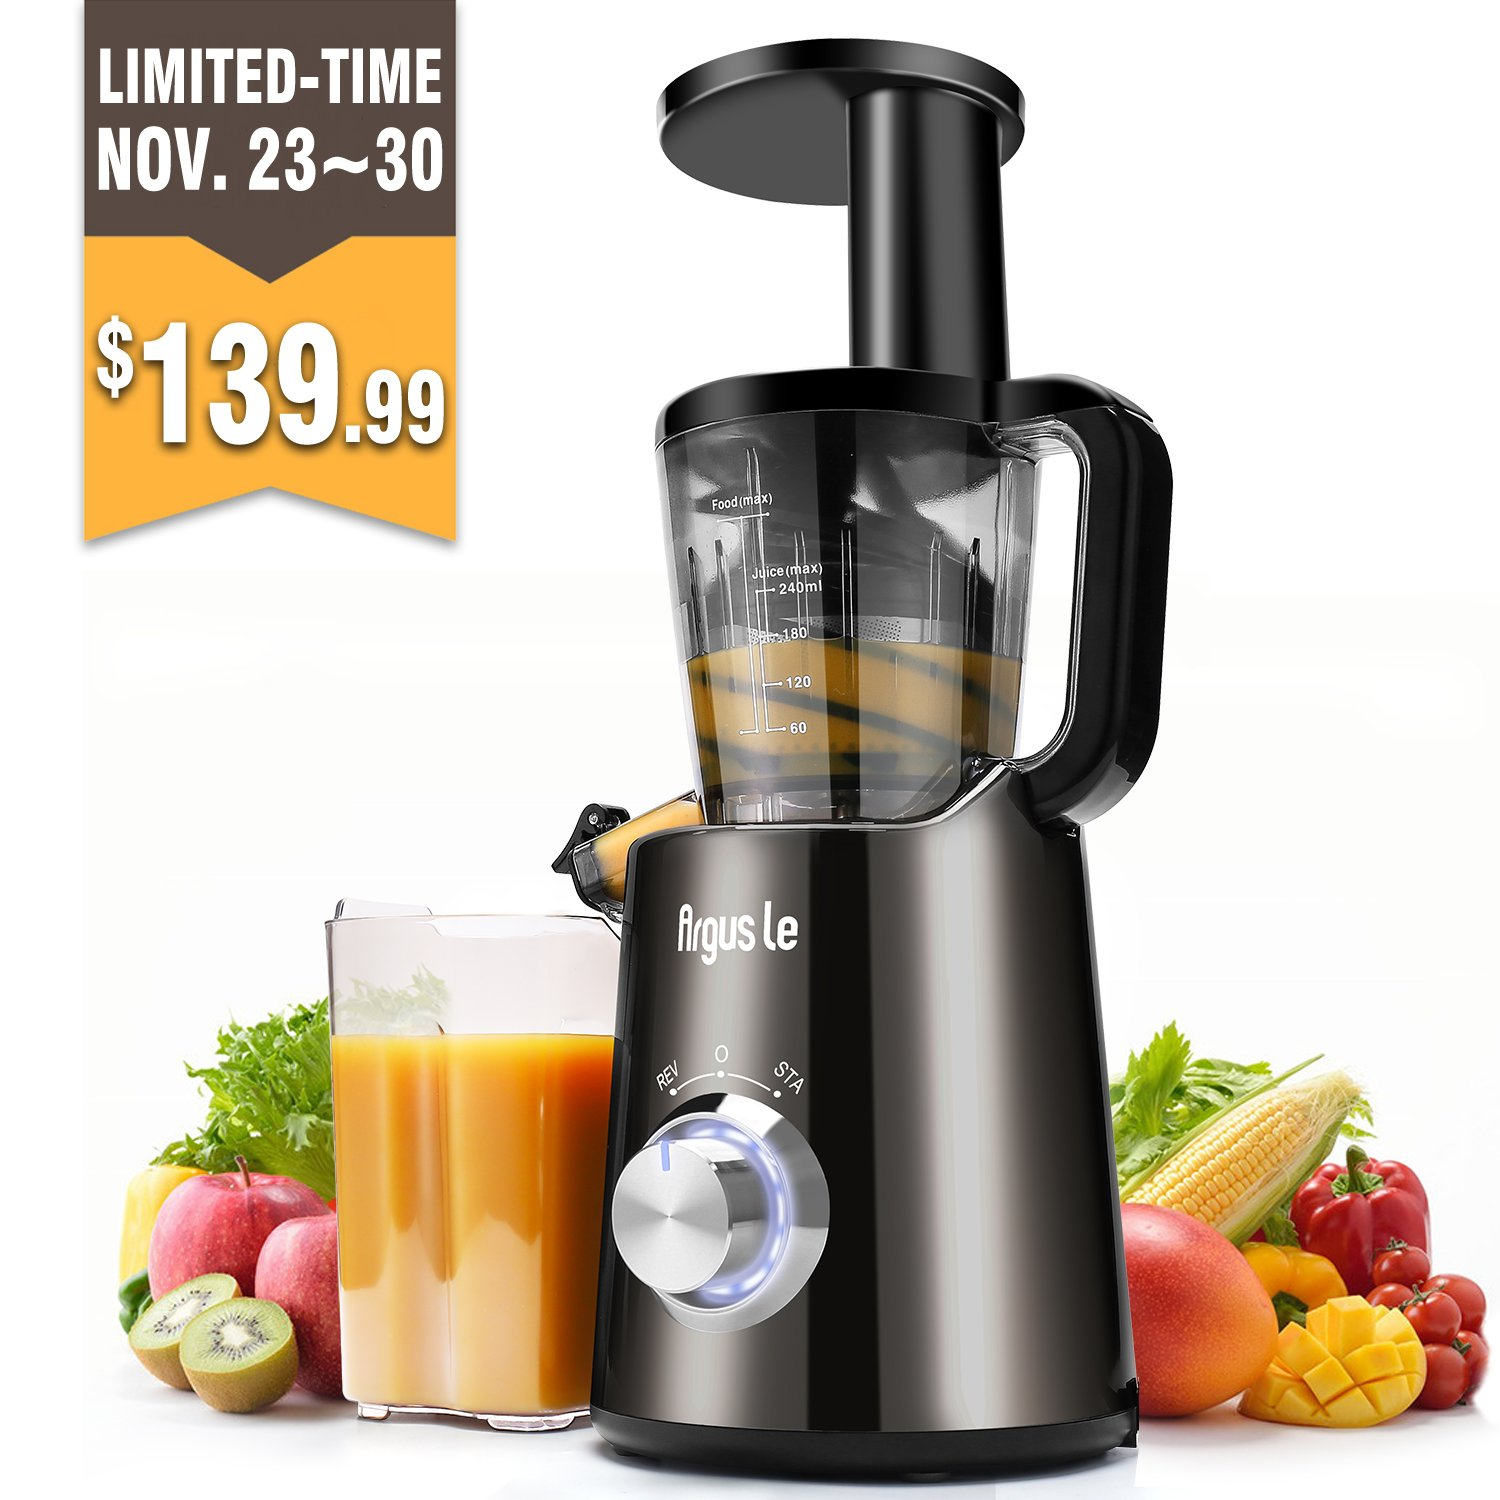 Argus Le Slow Masticating Juicer, High Juice Yield with Drier Pulp, Easy Cleaning and Operating Cold Press Juicer, Fruit and Vegetable Juice Extractor